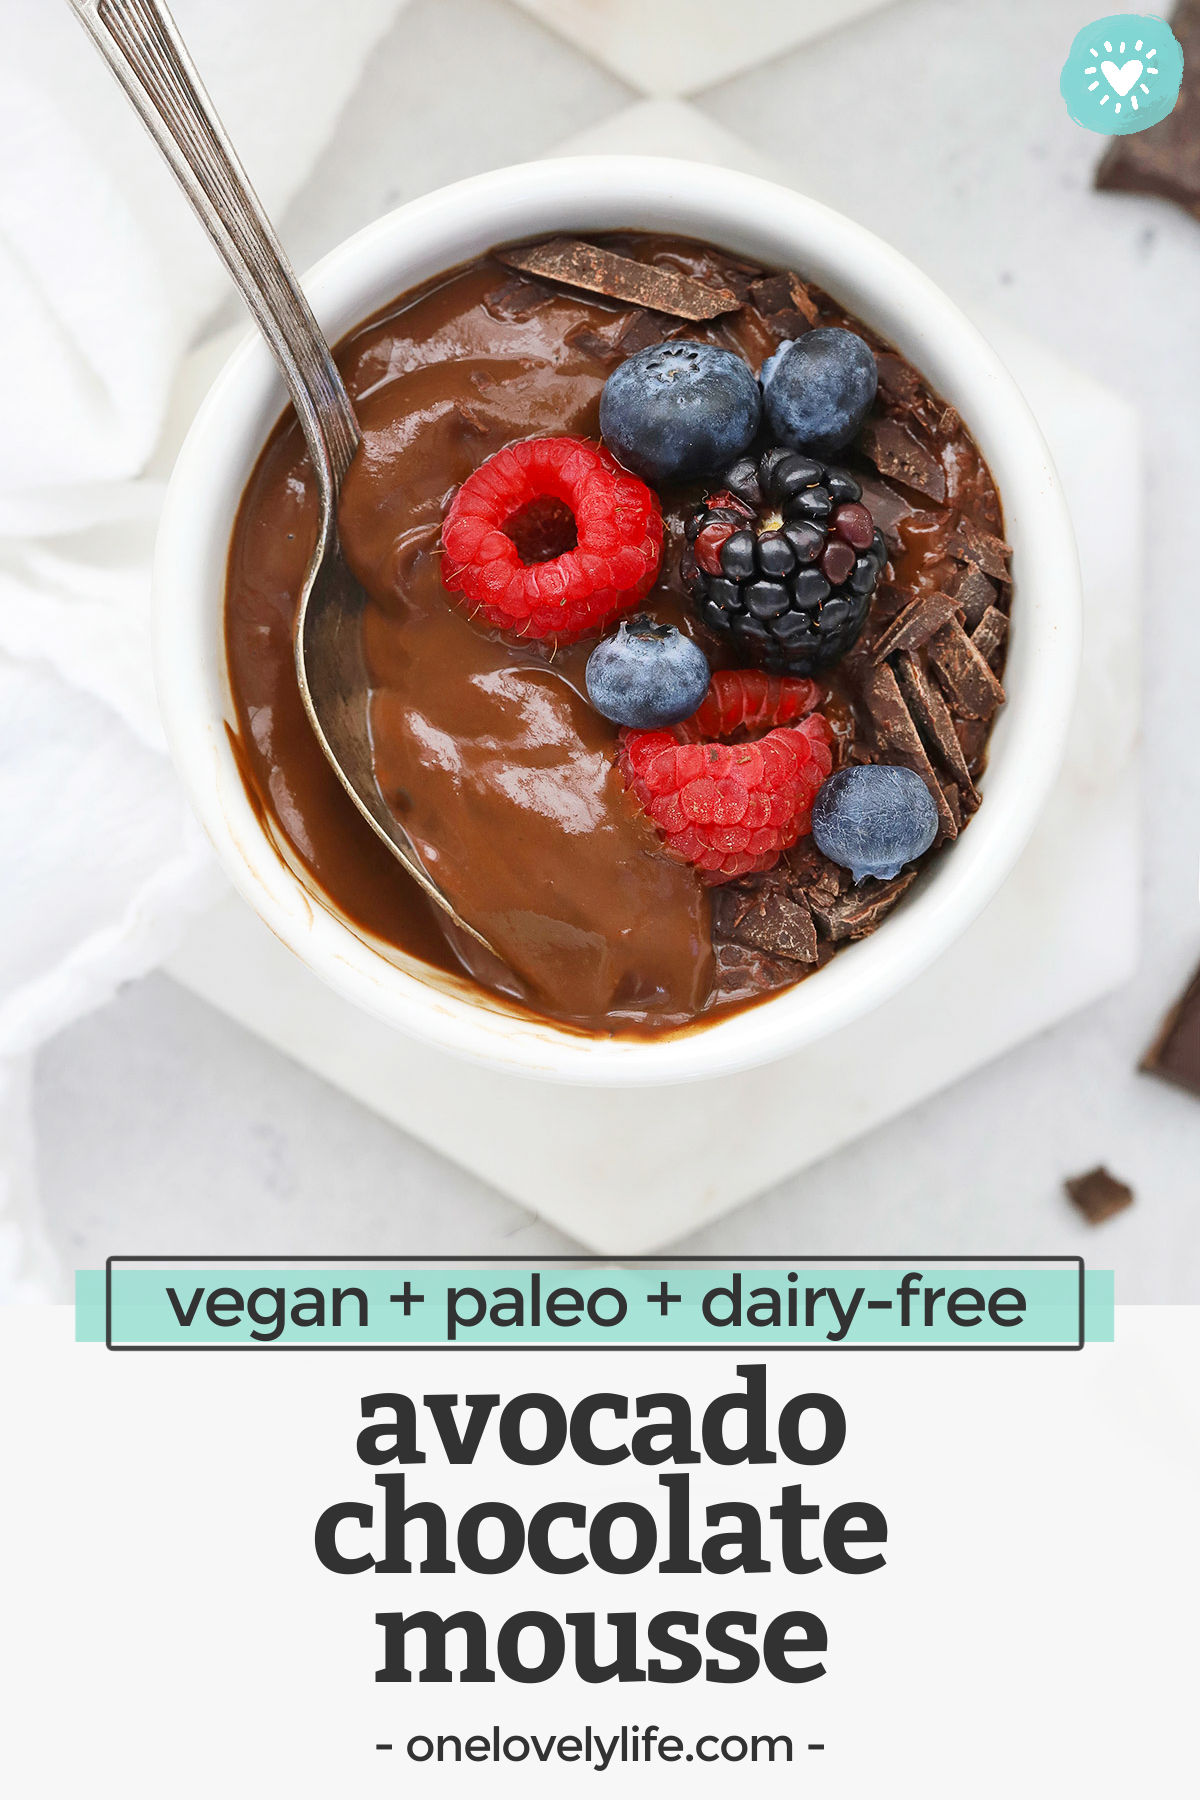 Chocolate Avocado Mousse - This velvety vegan chocolate mousse recipe has all the gorgeous flavor you're looking for and an ingredient list you're going to love! (Paleo, dairy-free). // paleo chocolate mousse // healthy chocolate mousse // dairy-free chocolate mousse // Avocado Chocolate pudding // Healthy dessert #vegan #chocolate #mousse #paleo #glutenfree #dairyfree #avocado